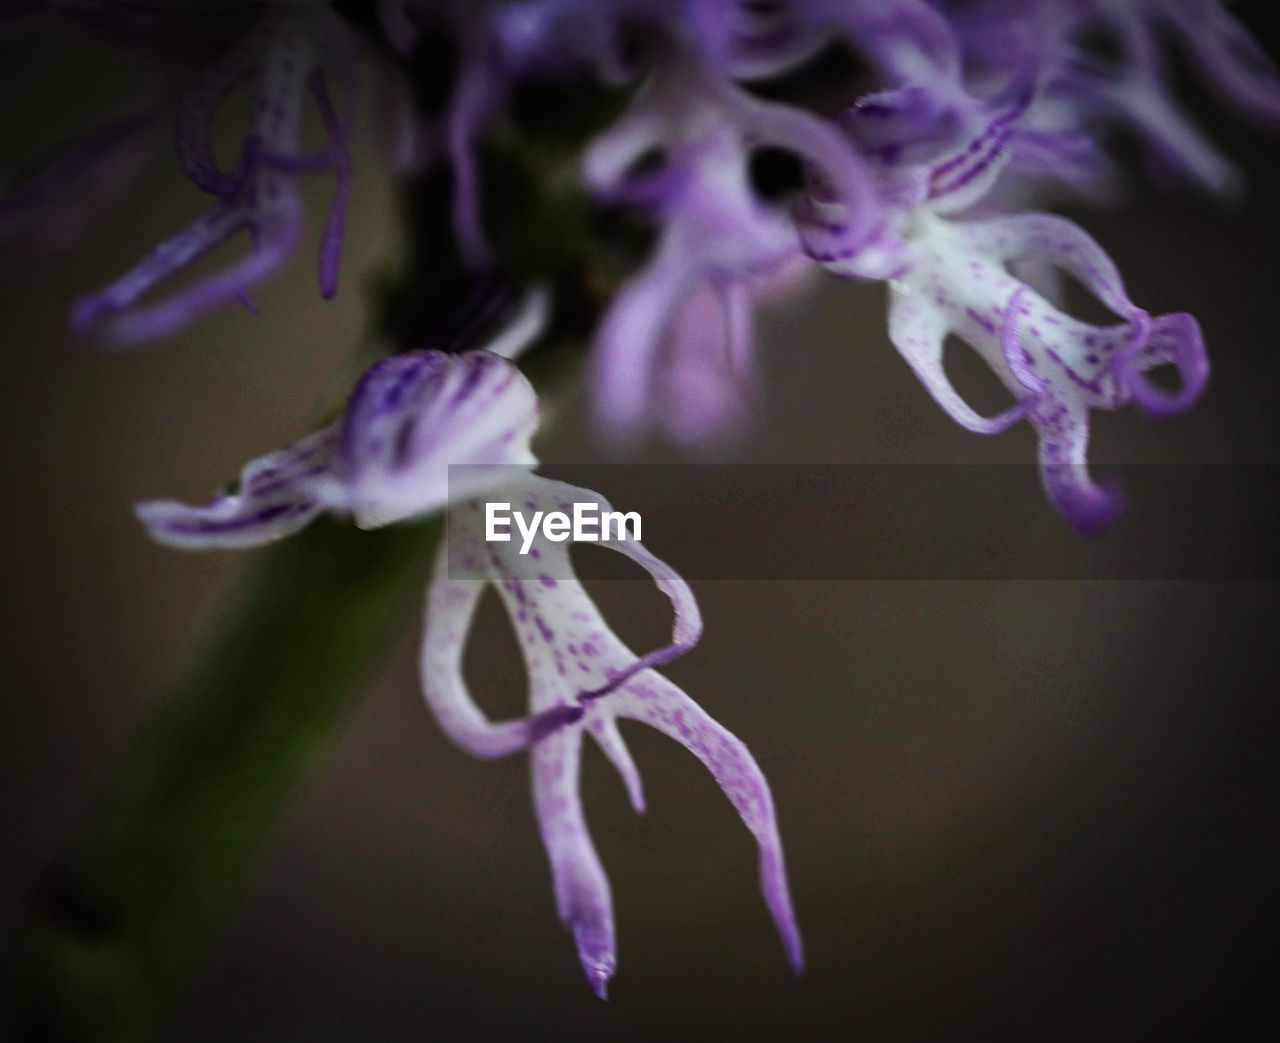 flower, flowering plant, vulnerability, beauty in nature, fragility, close-up, plant, petal, freshness, purple, flower head, inflorescence, growth, selective focus, nature, no people, pollen, focus on foreground, indoors, botany, black background, iris - plant